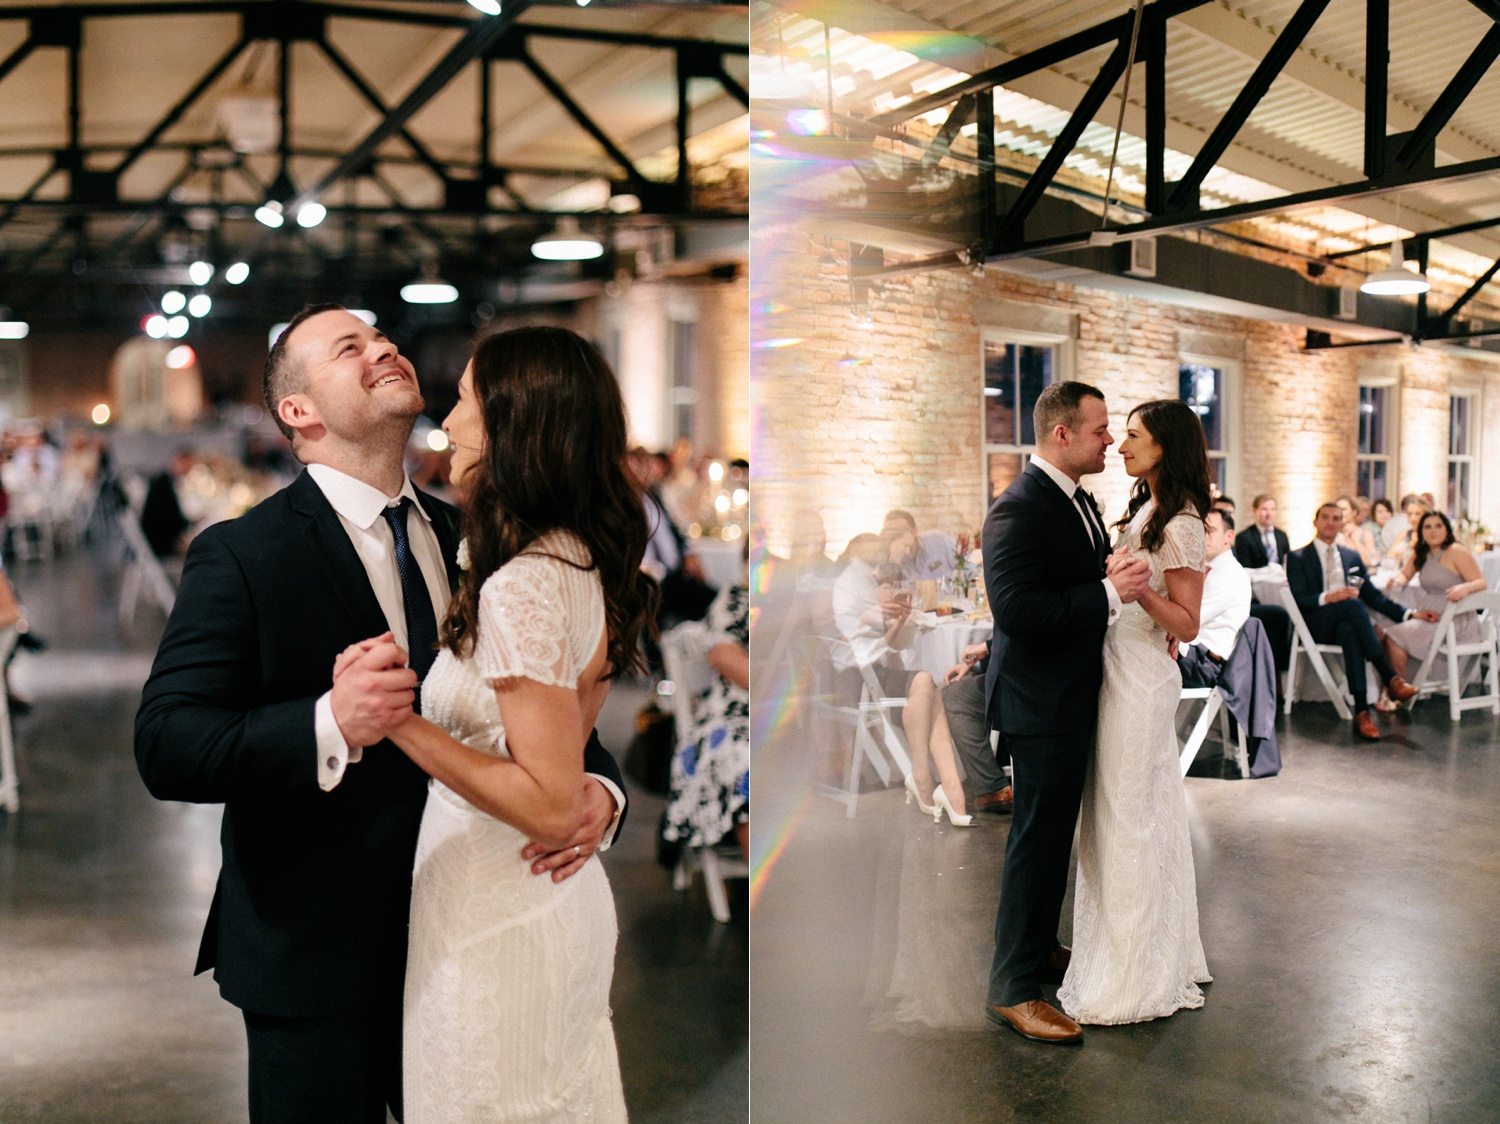 Kadee + Tyler | a raw, emotional wedding at the Filter Building on White Rock Lake in Dallas, TX by North Texas Wedding Photographer, Rachel Meagan Photography 195